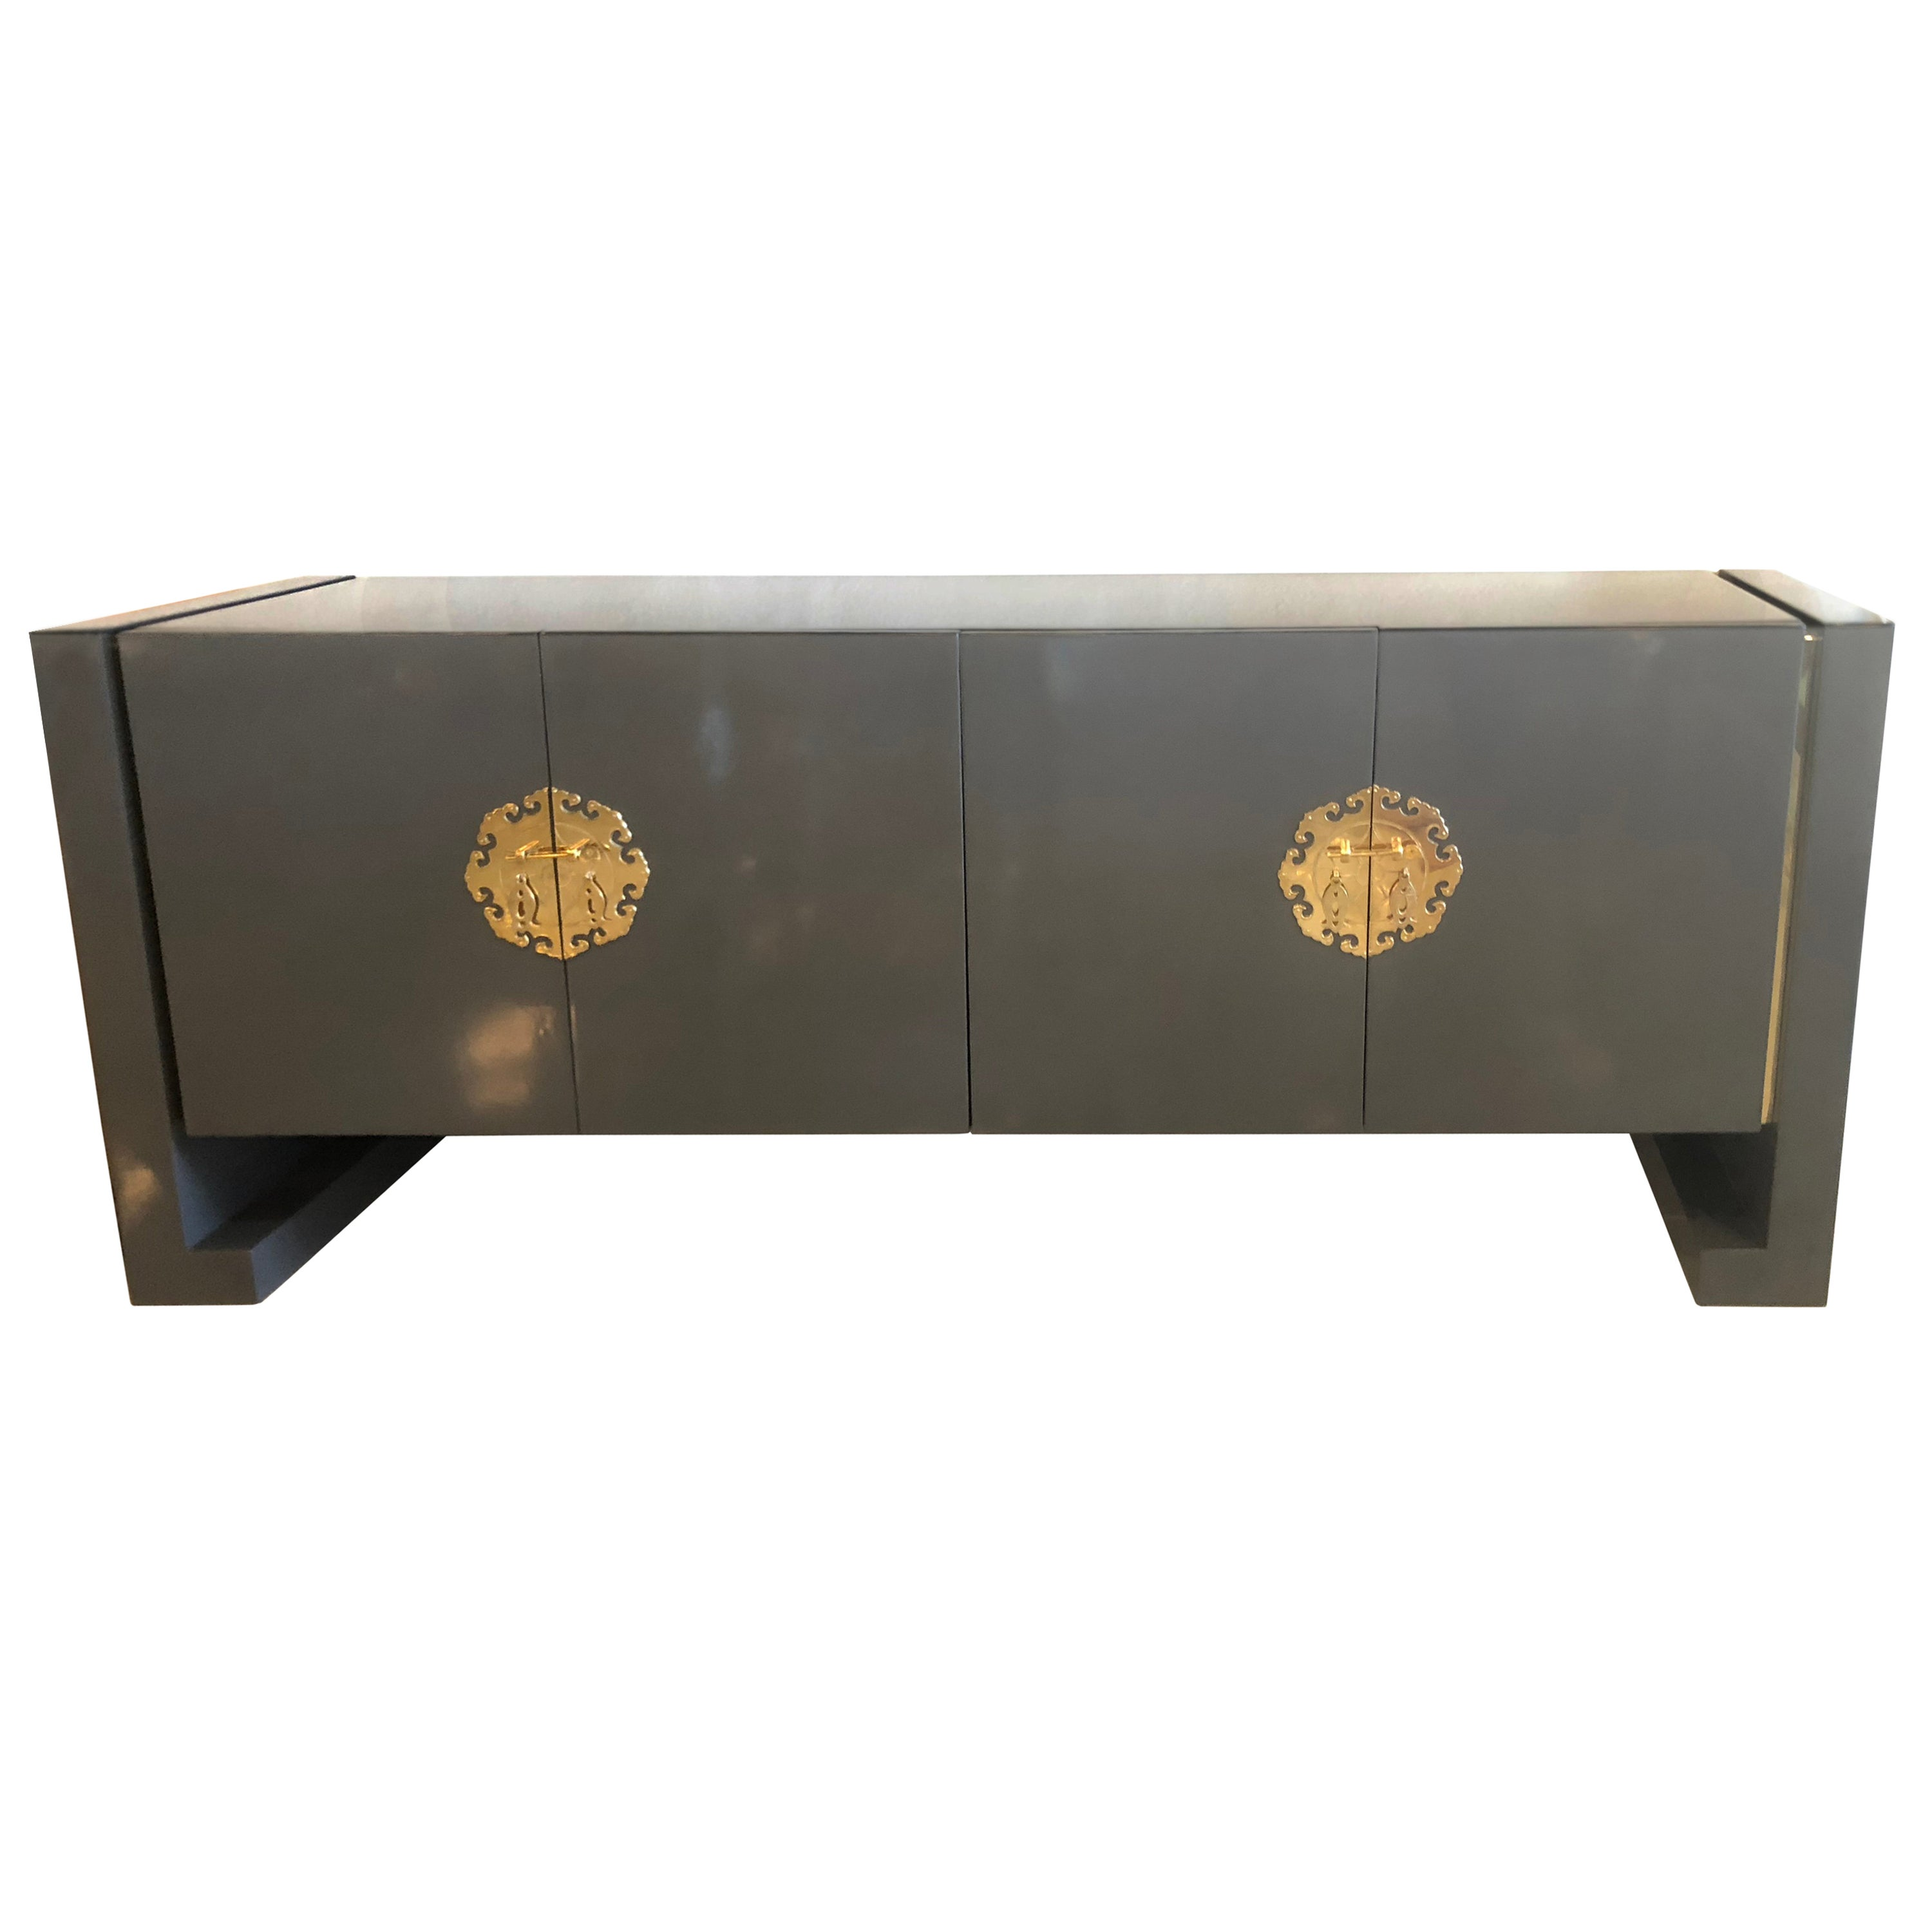 Vintage Grey Lacquered Brass Century Furniture Ming Credenza Buffet Sideboard